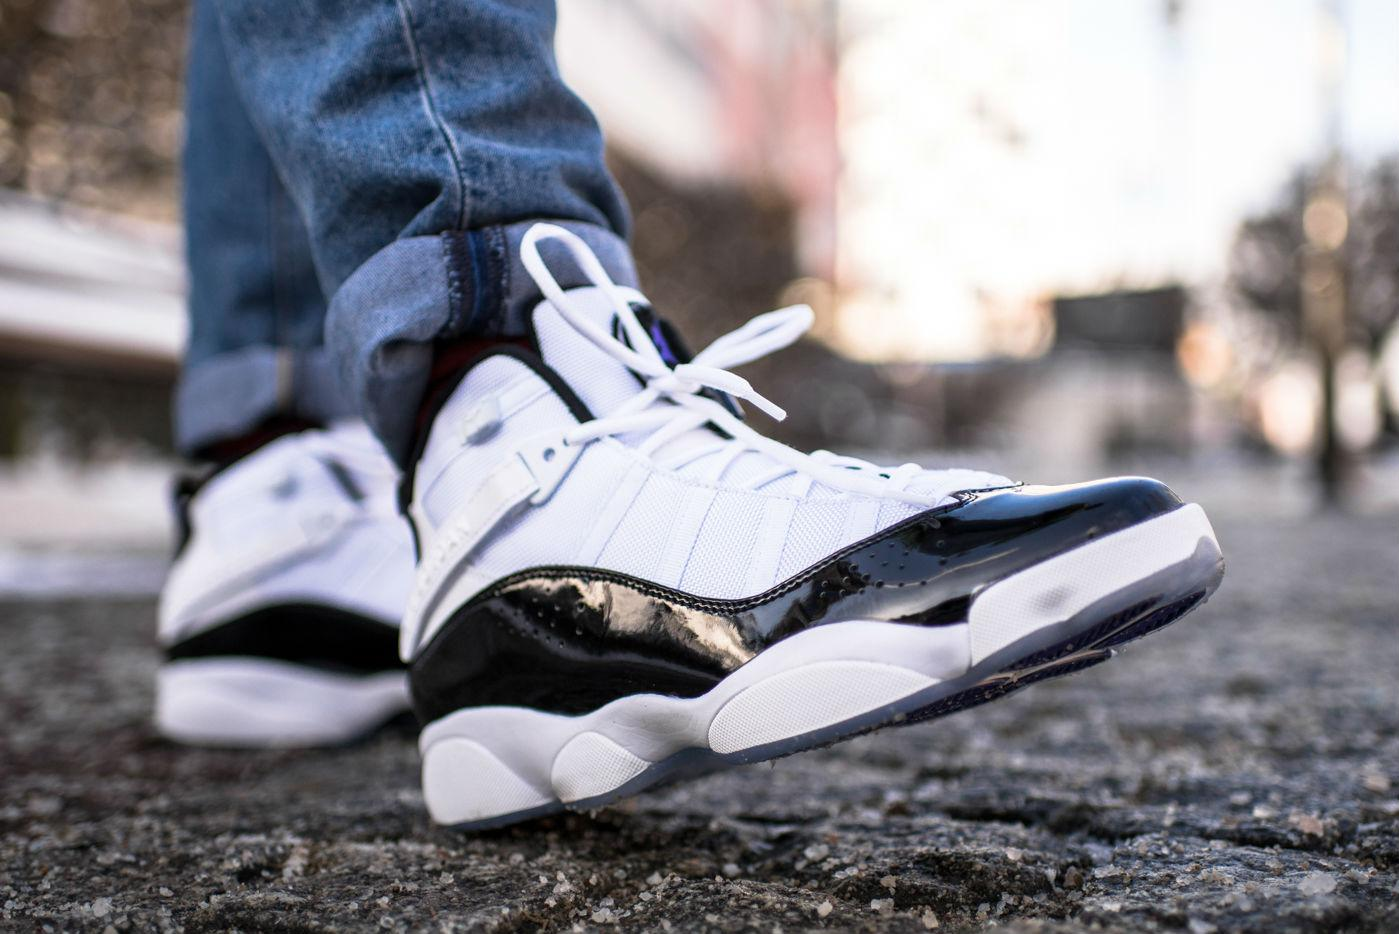 outlet store 8dd97 82cb8 An On-Foot Look at the Jordan 6 Rings 'Concord' - WearTesters